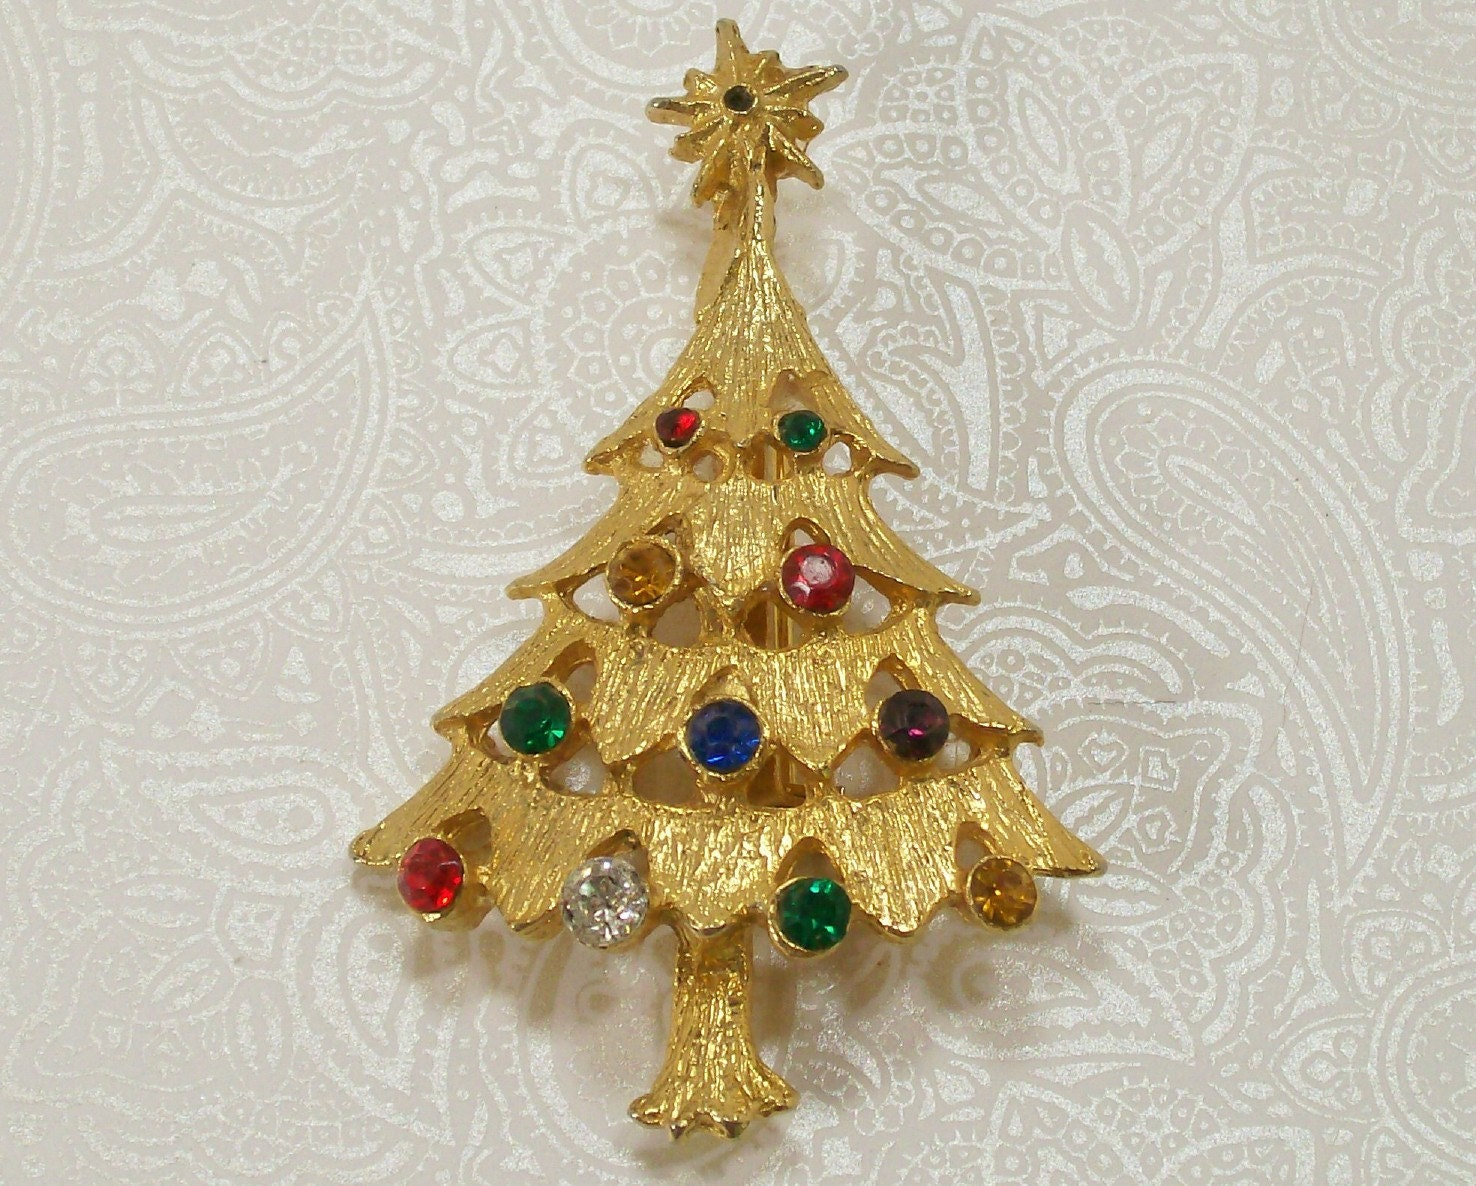 Christmas Tree Pin Brooch Multi Colored Stones Gold Toned